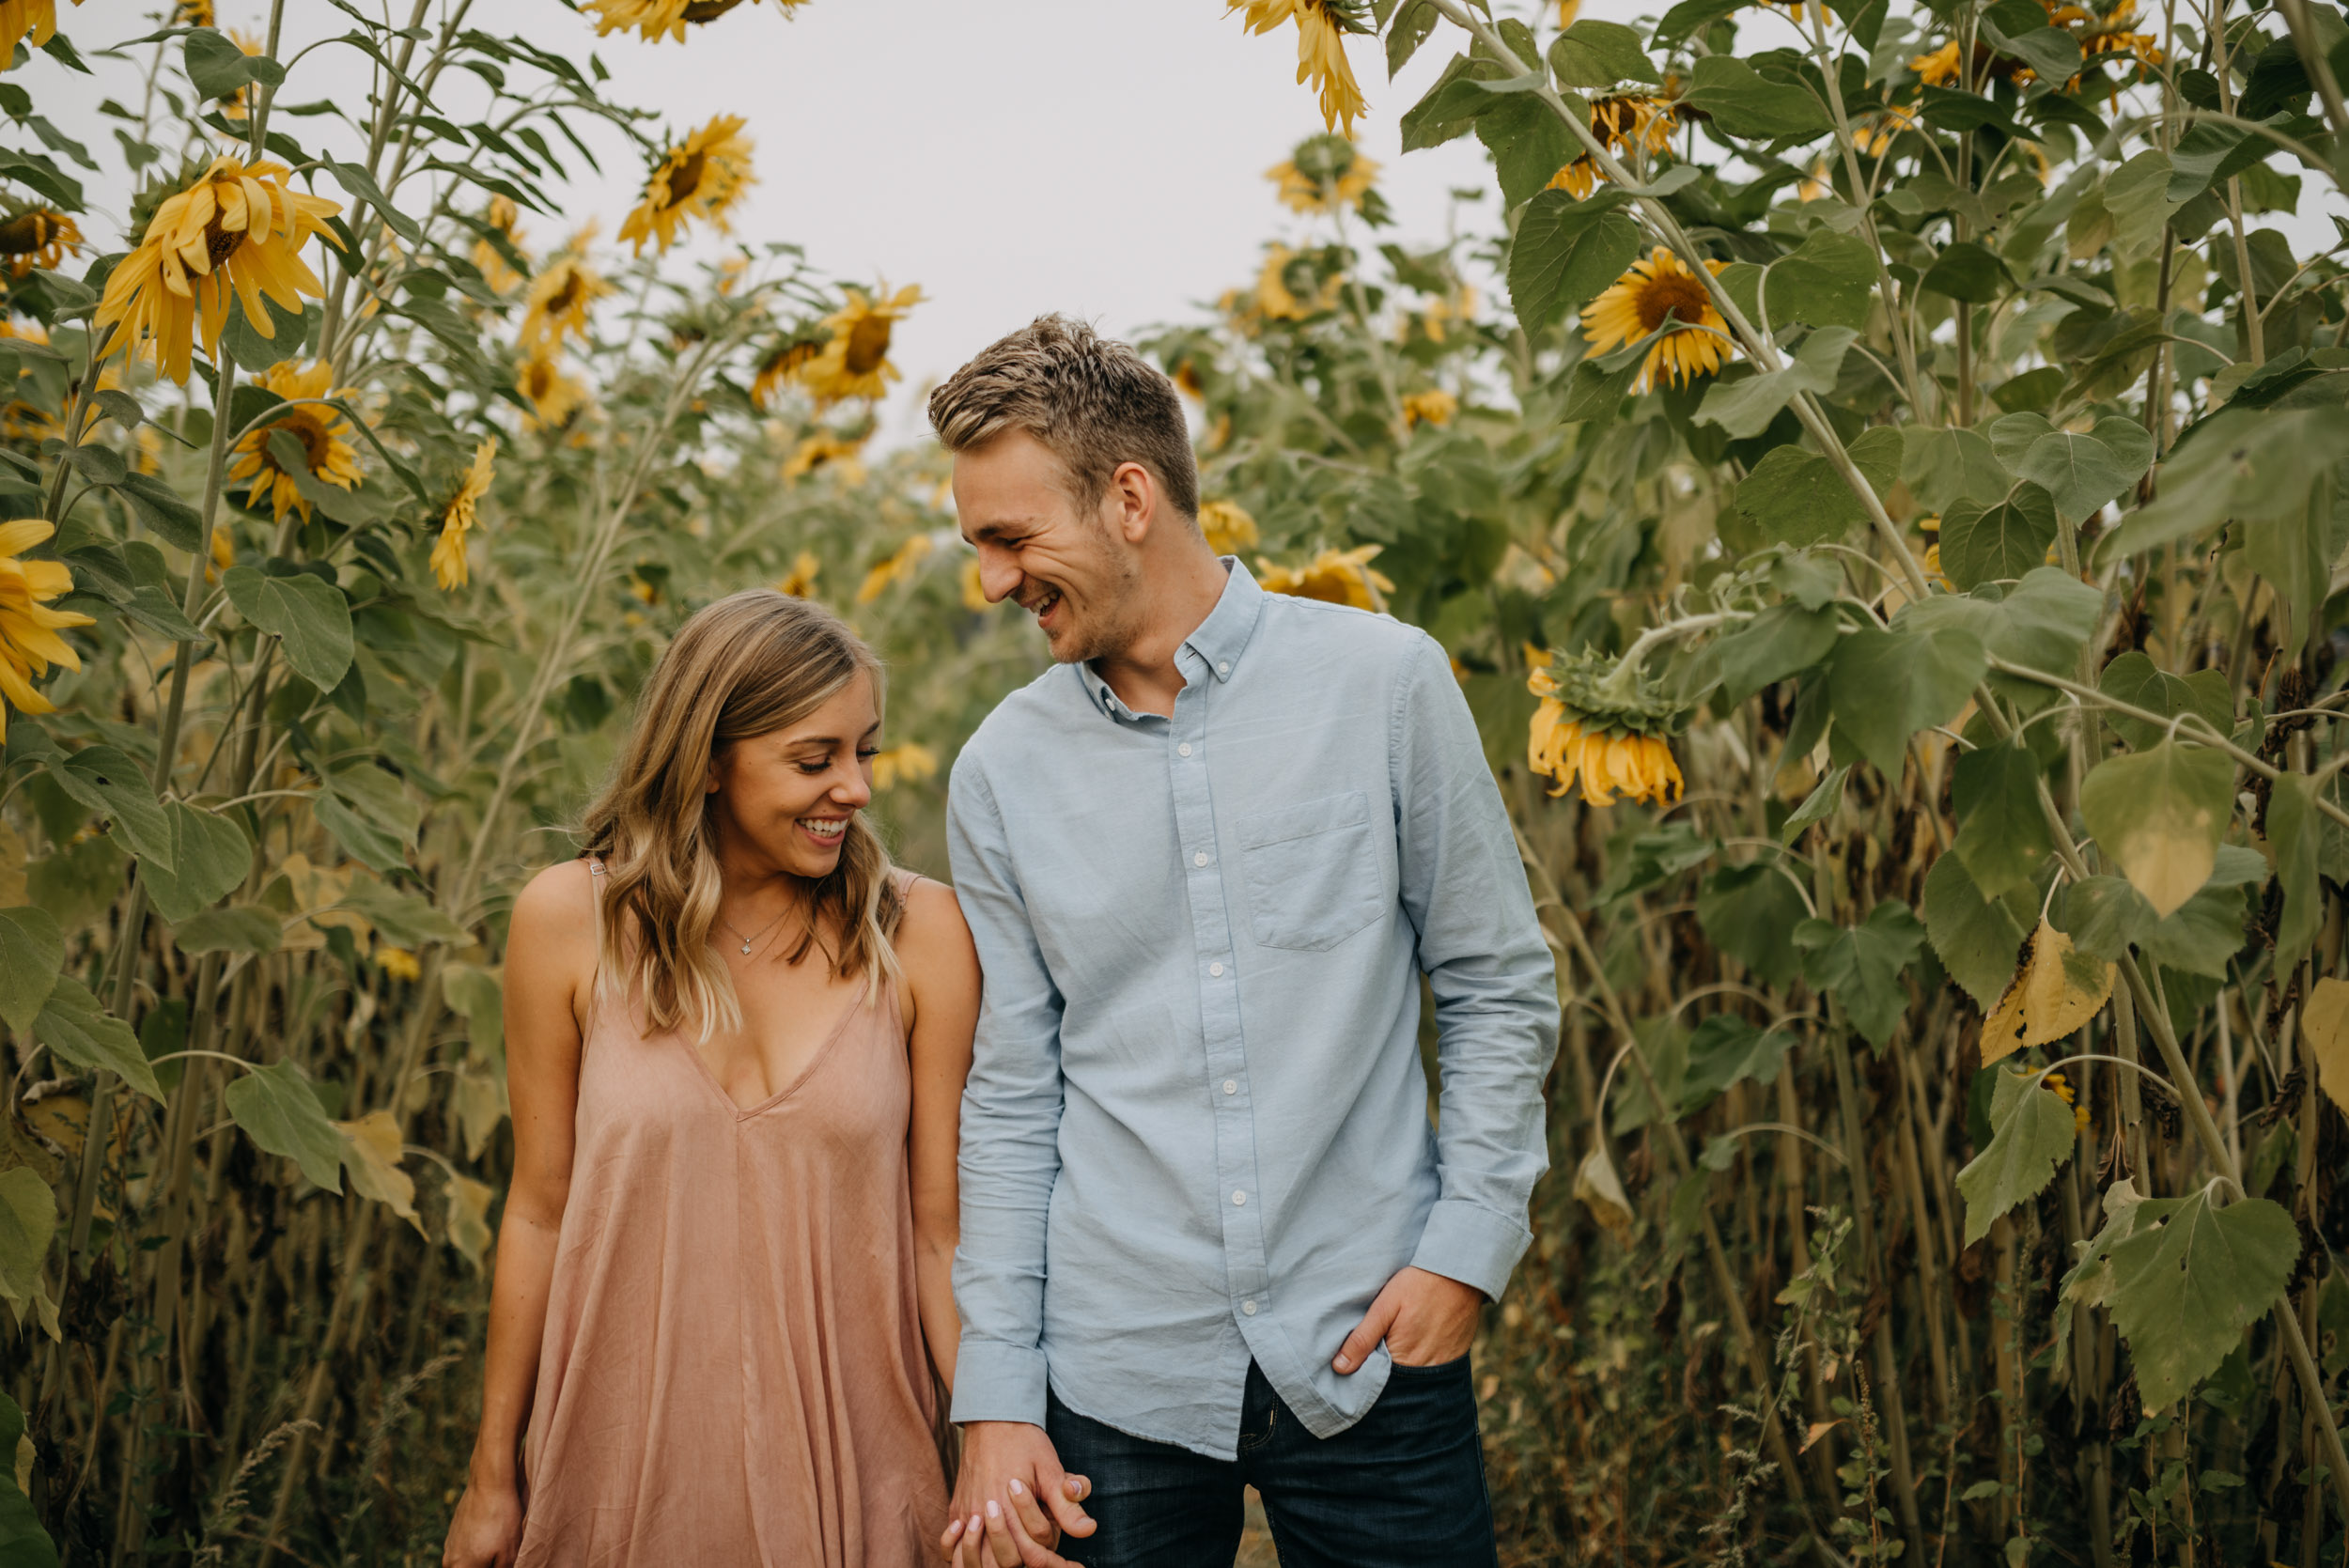 Sauvie-Island-Oregon-Sunflower-Portland-Engagement-3943.jpg